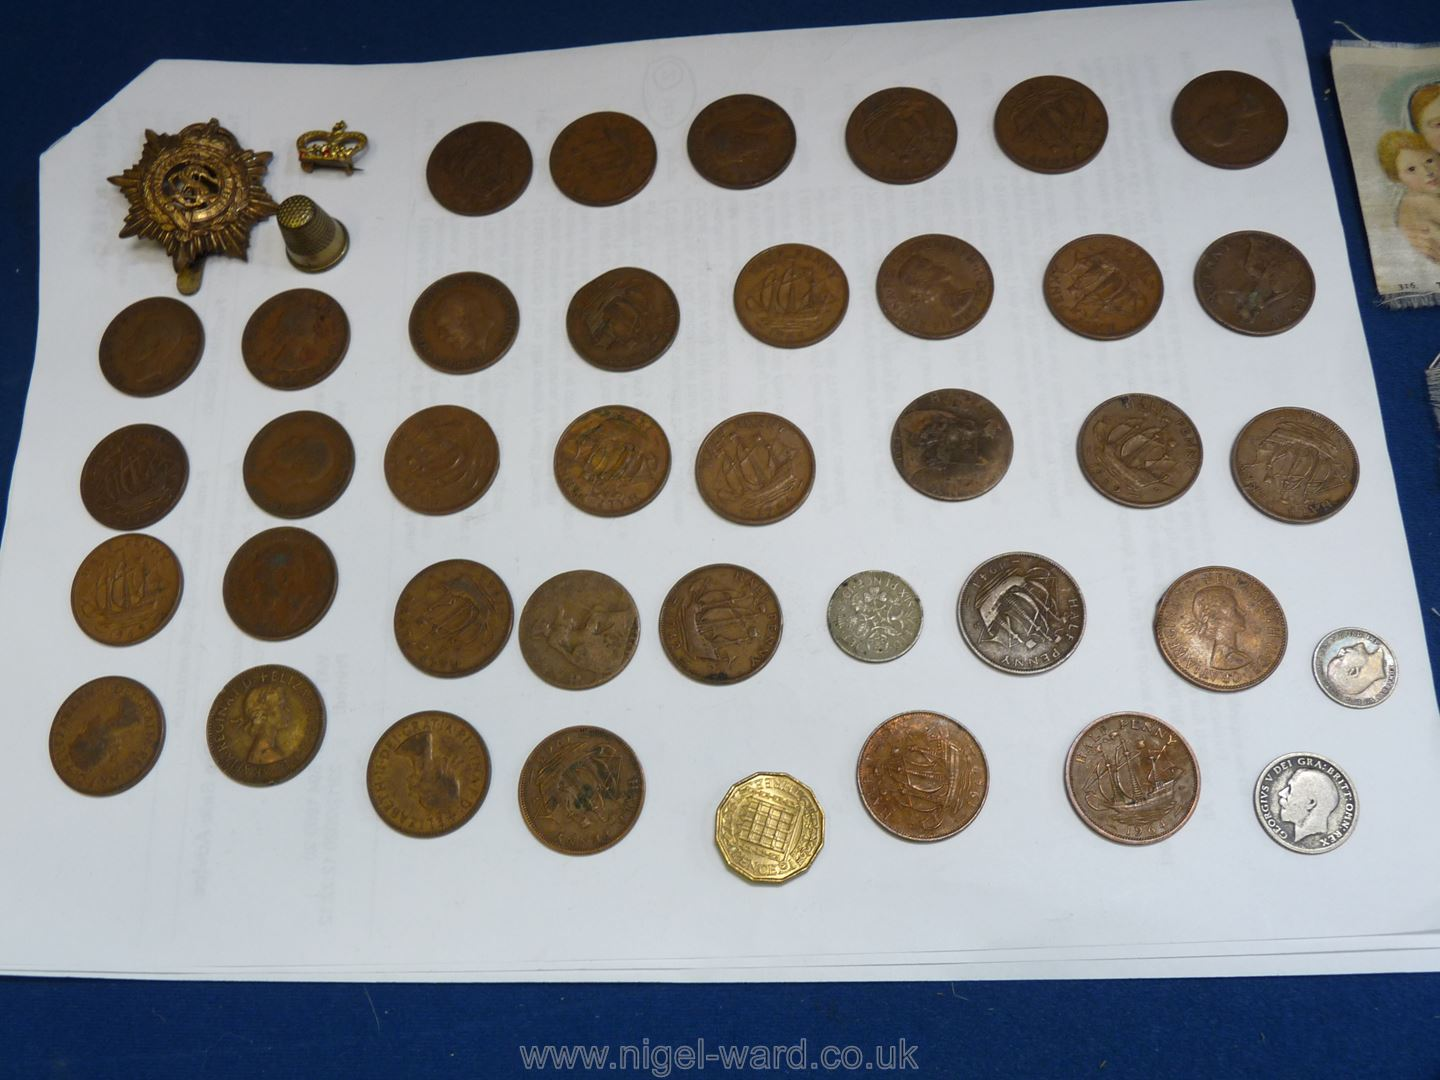 An Order of the Garter badge together with a quantity of half pennies, silver 3d piece, 3p bit, - Image 2 of 2